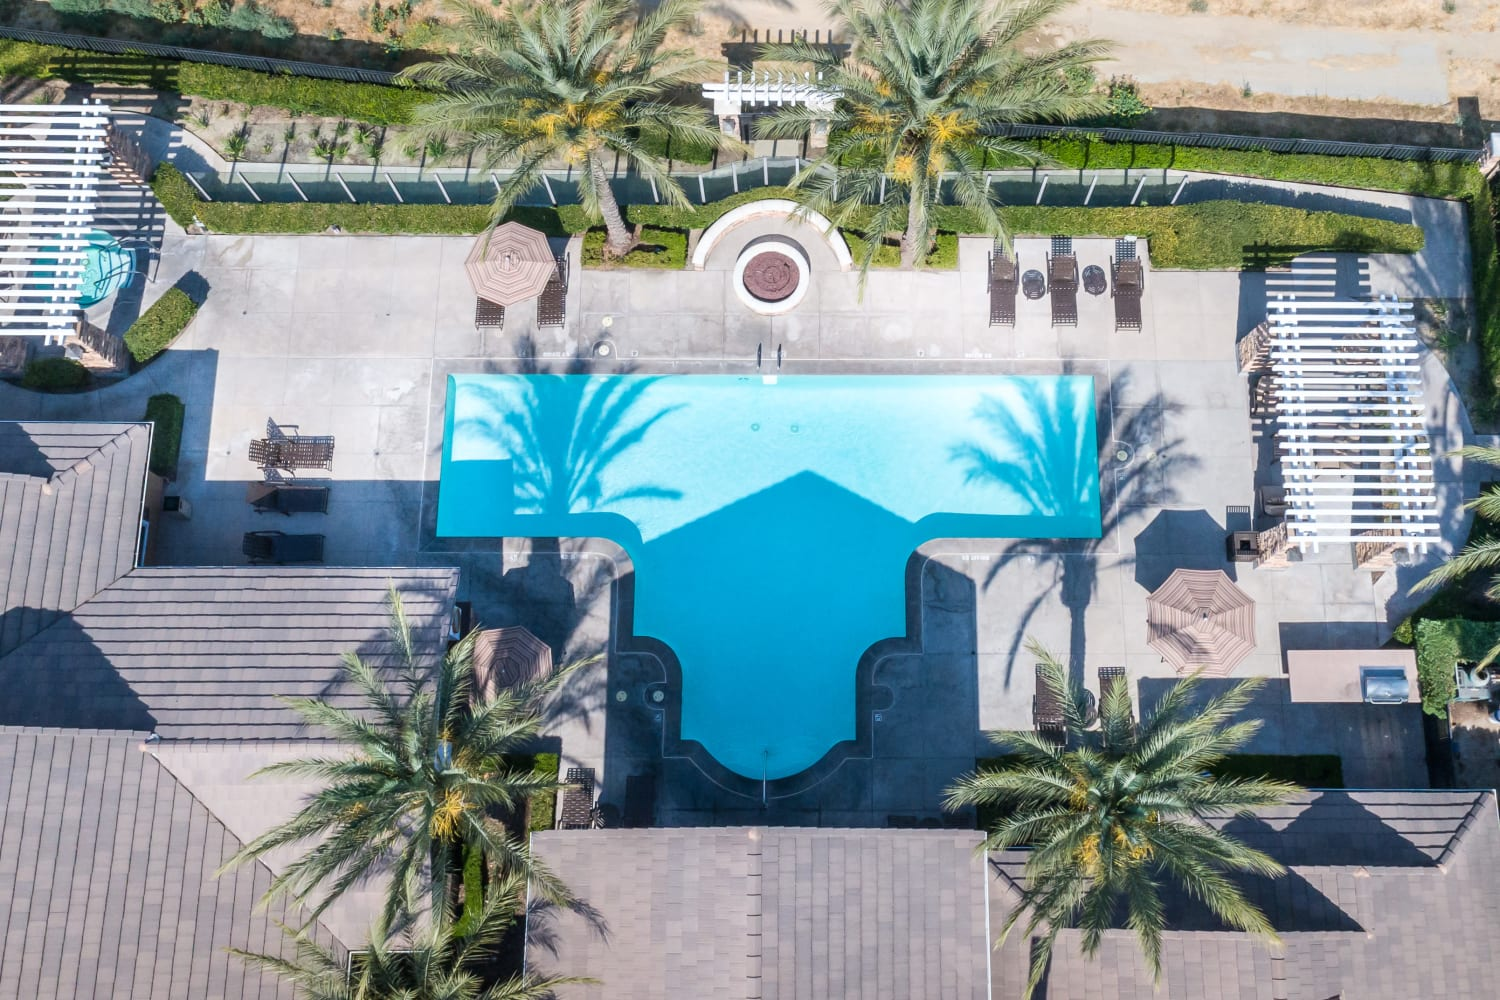 Enjoy a sparkling swimming pool at The Village on 5th in Rancho Cucamonga, California